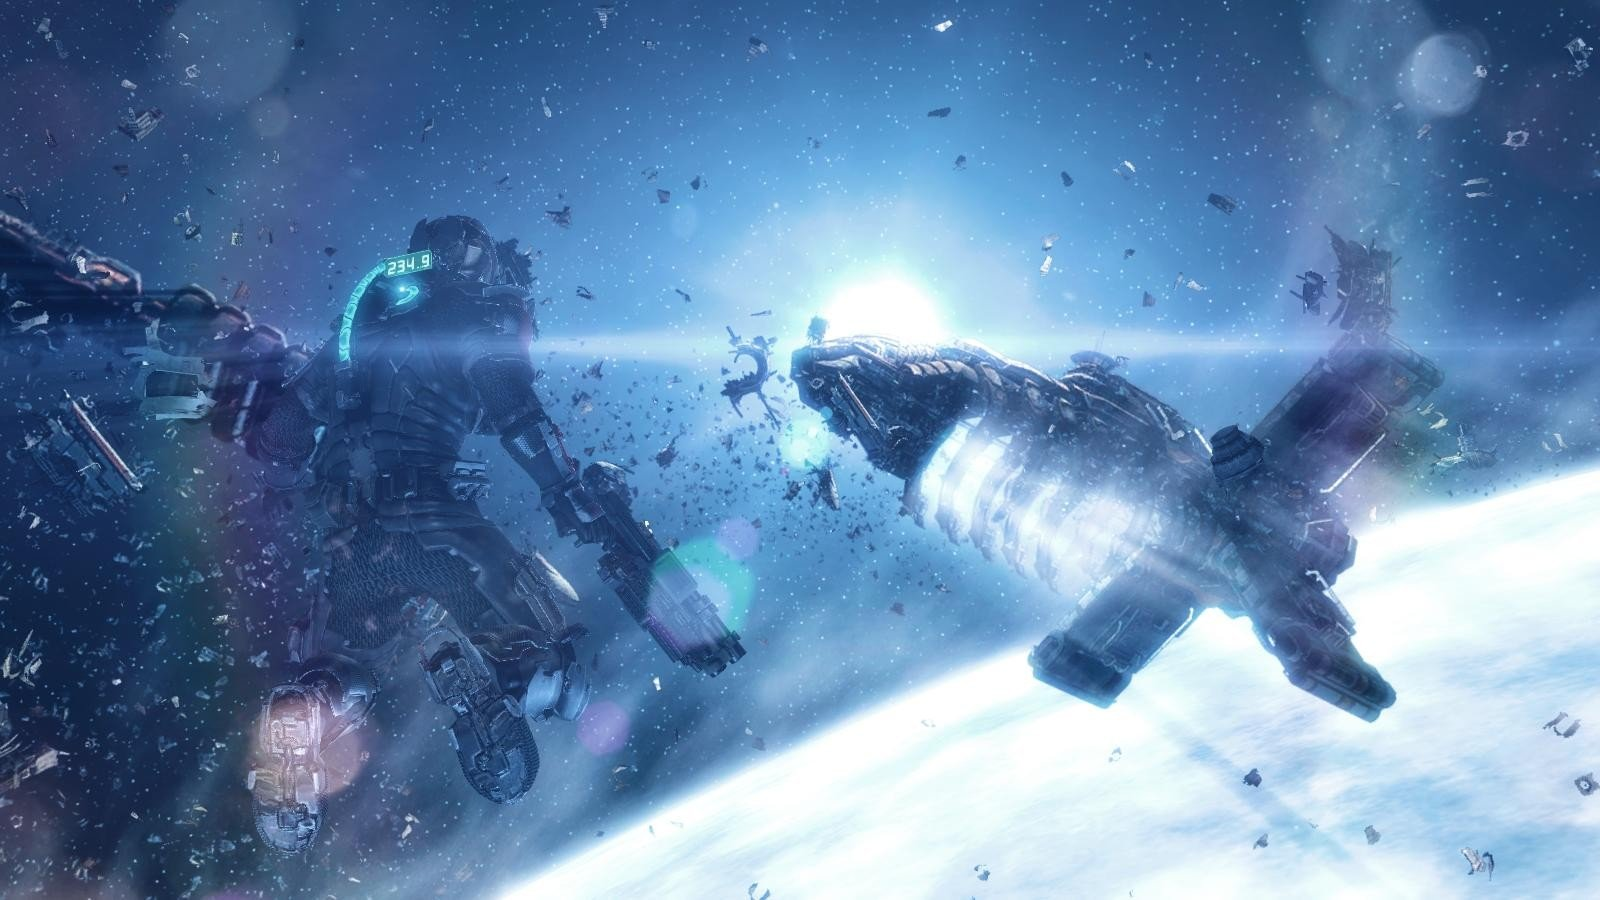 space science fiction dead space 2 video games